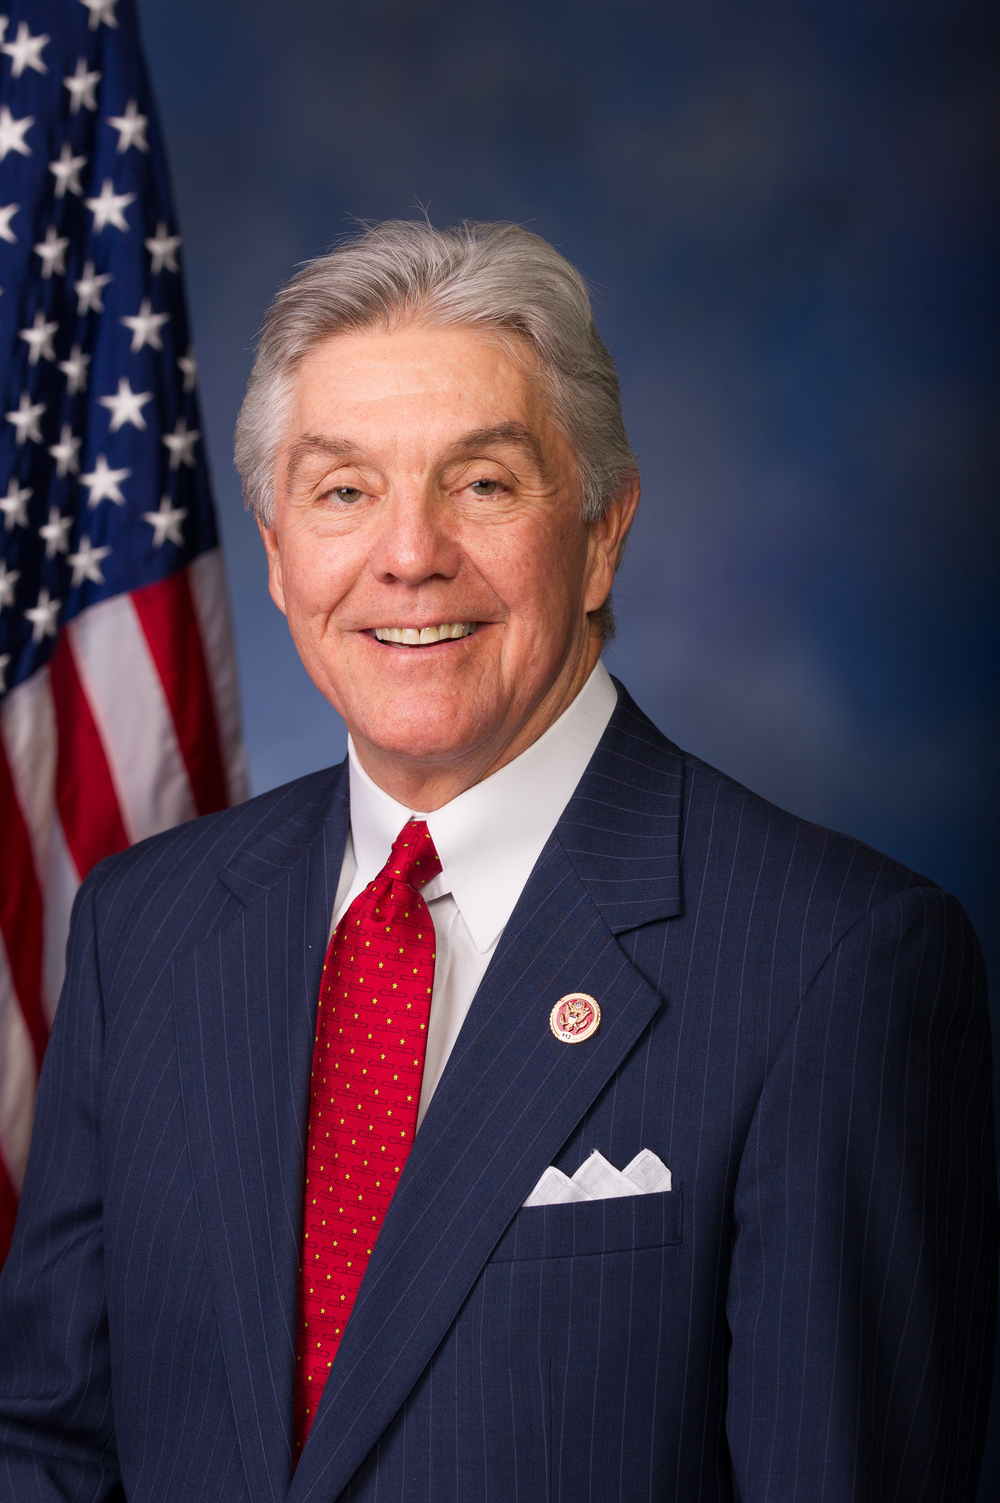 Representative Roger Williams (R-TX-25)